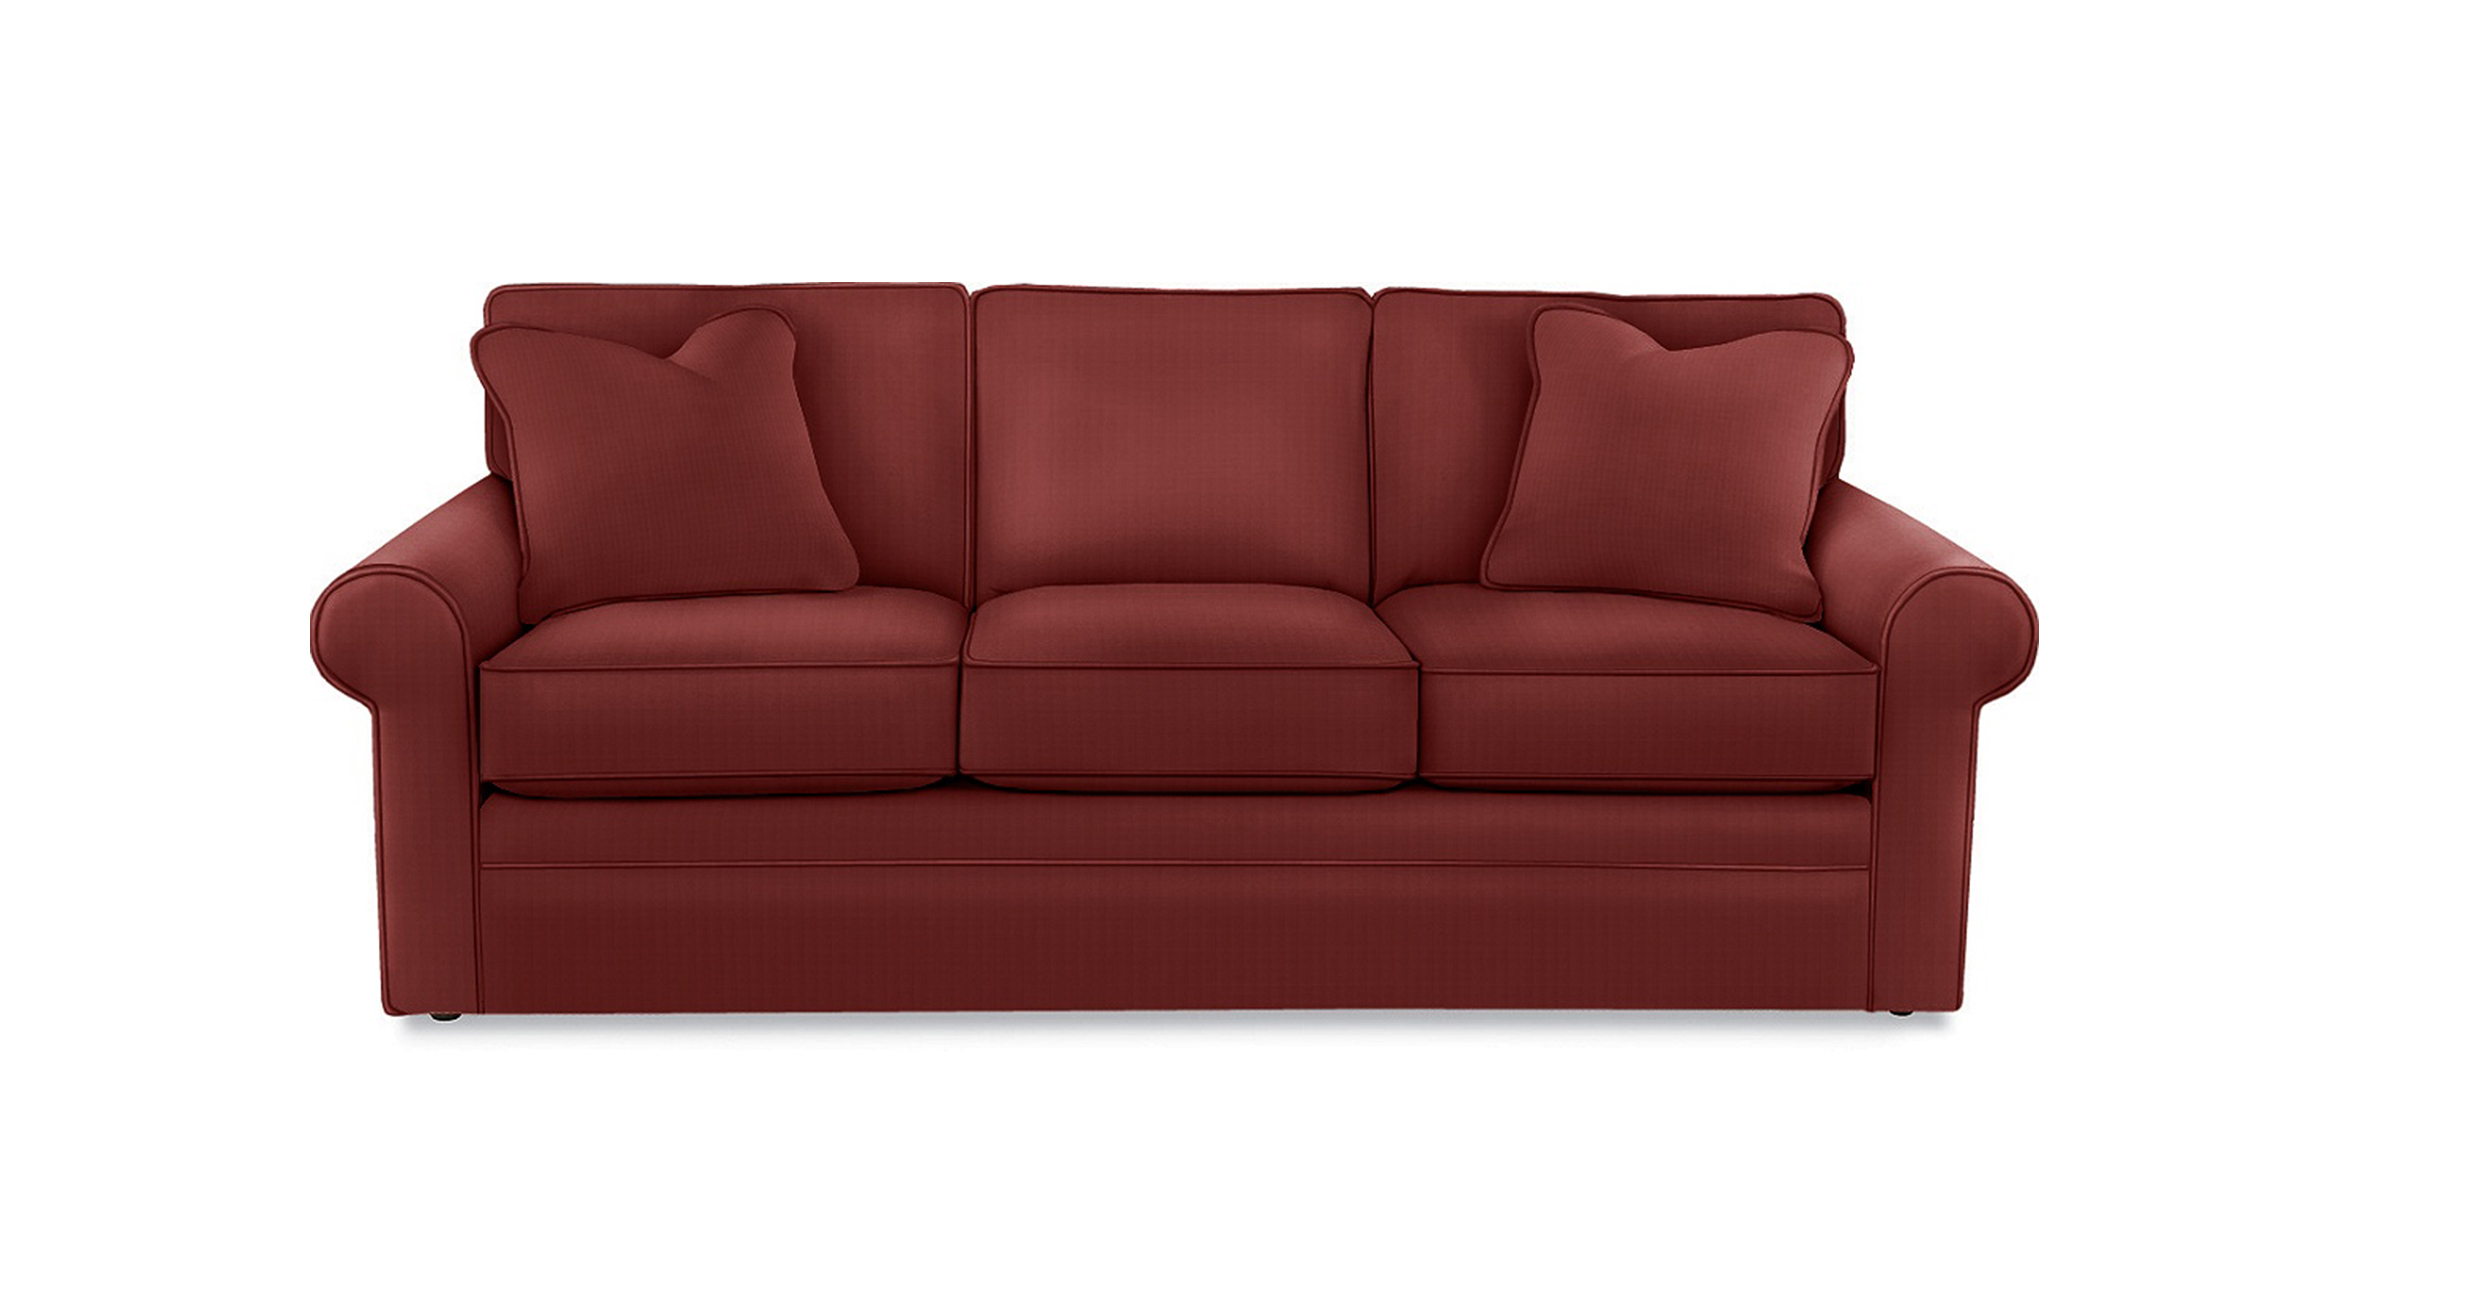 Preferred Lazy Boy Sofas And Loveseats – Cornett's Furniture And Bedding In Lazy Boy Sofas And Chairs (Gallery 11 of 20)